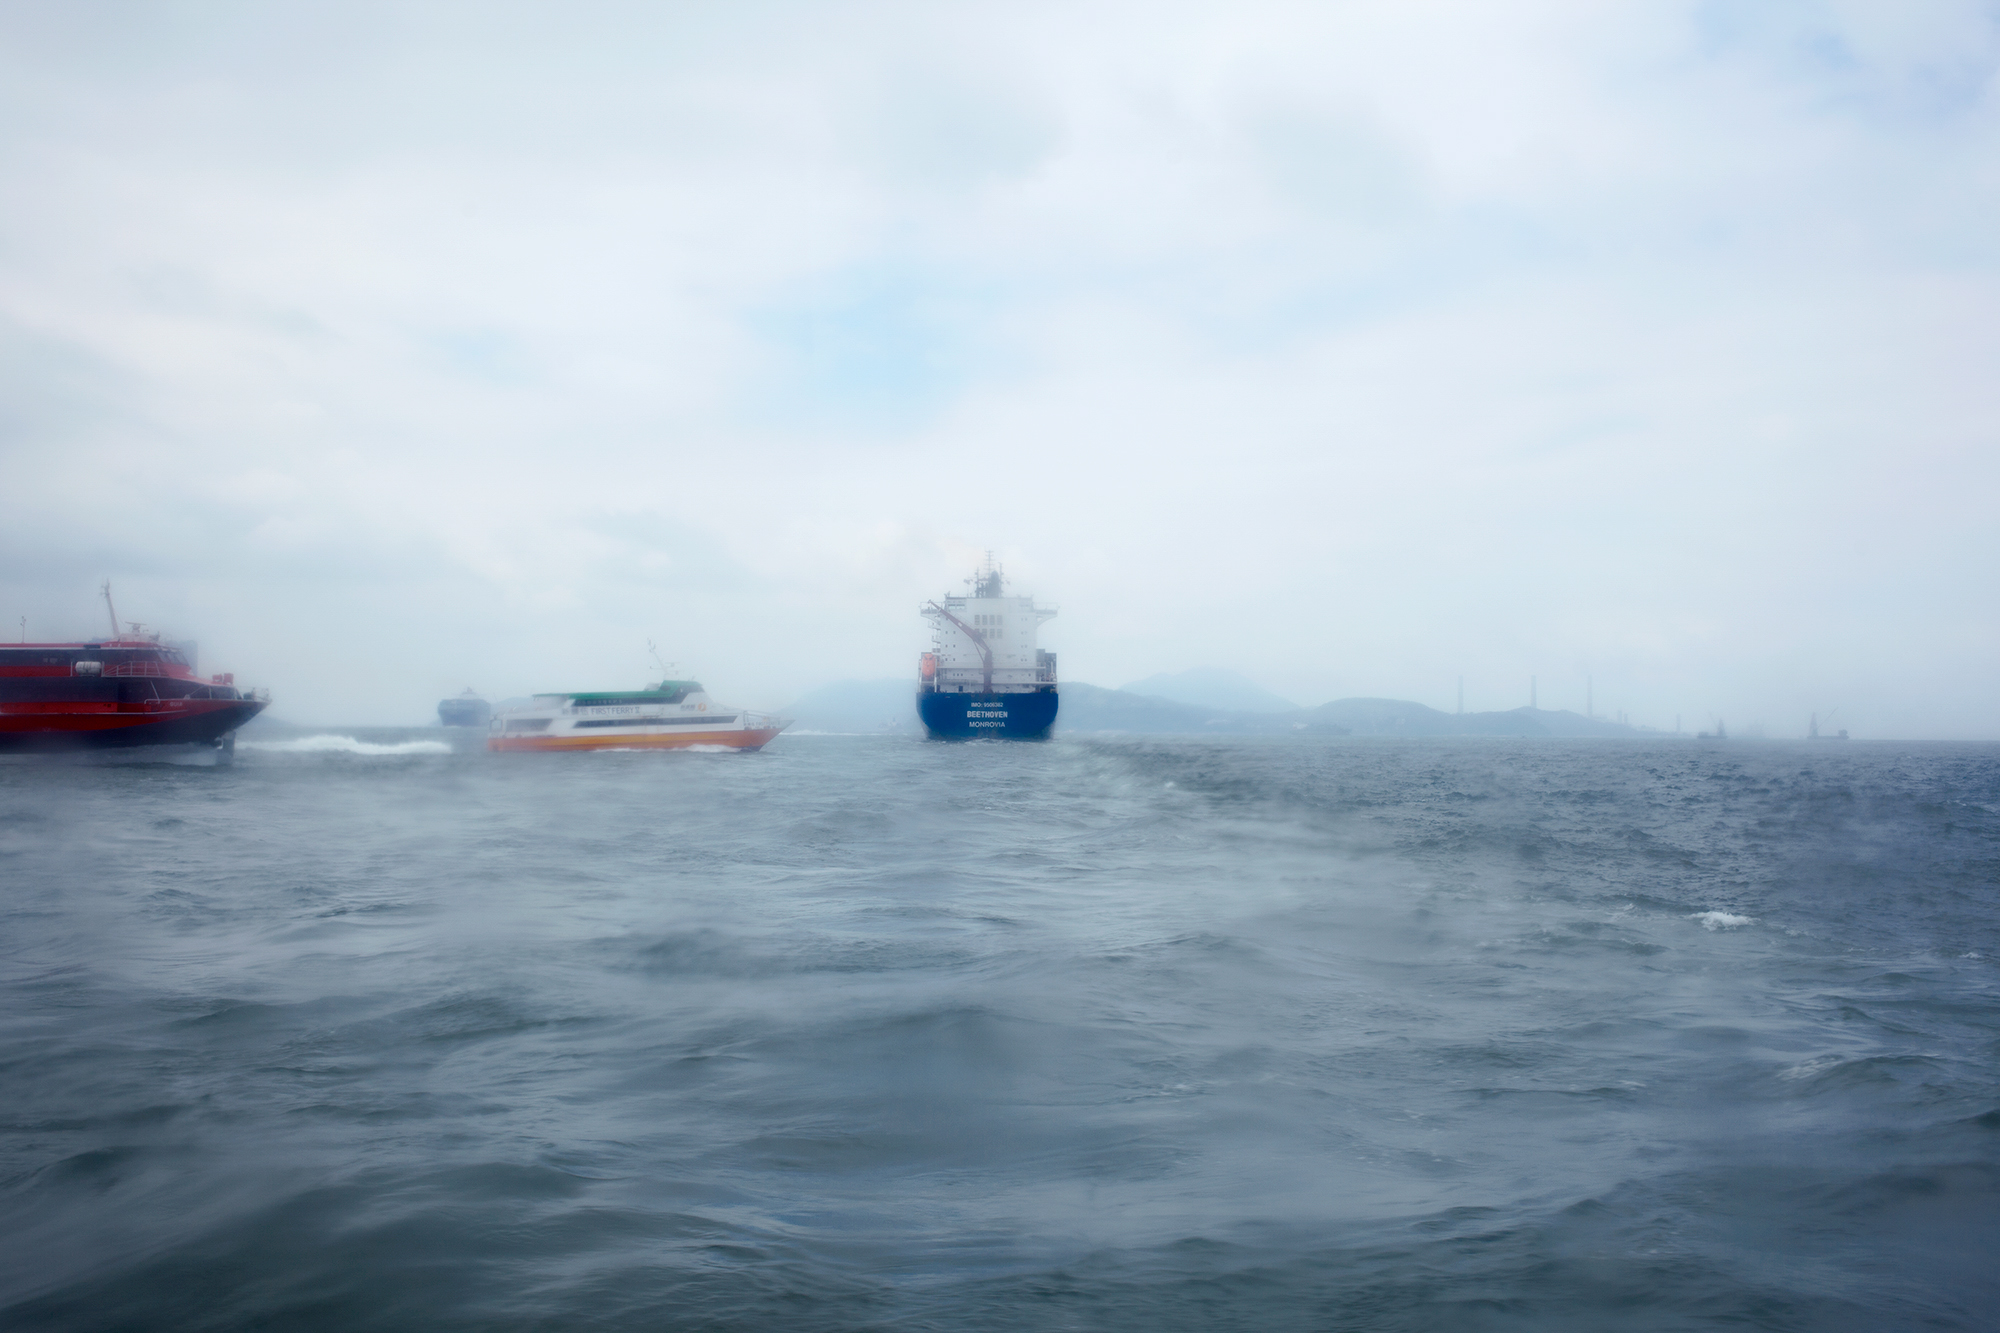 A container ship departs from the port of Hong Kong, 2016.